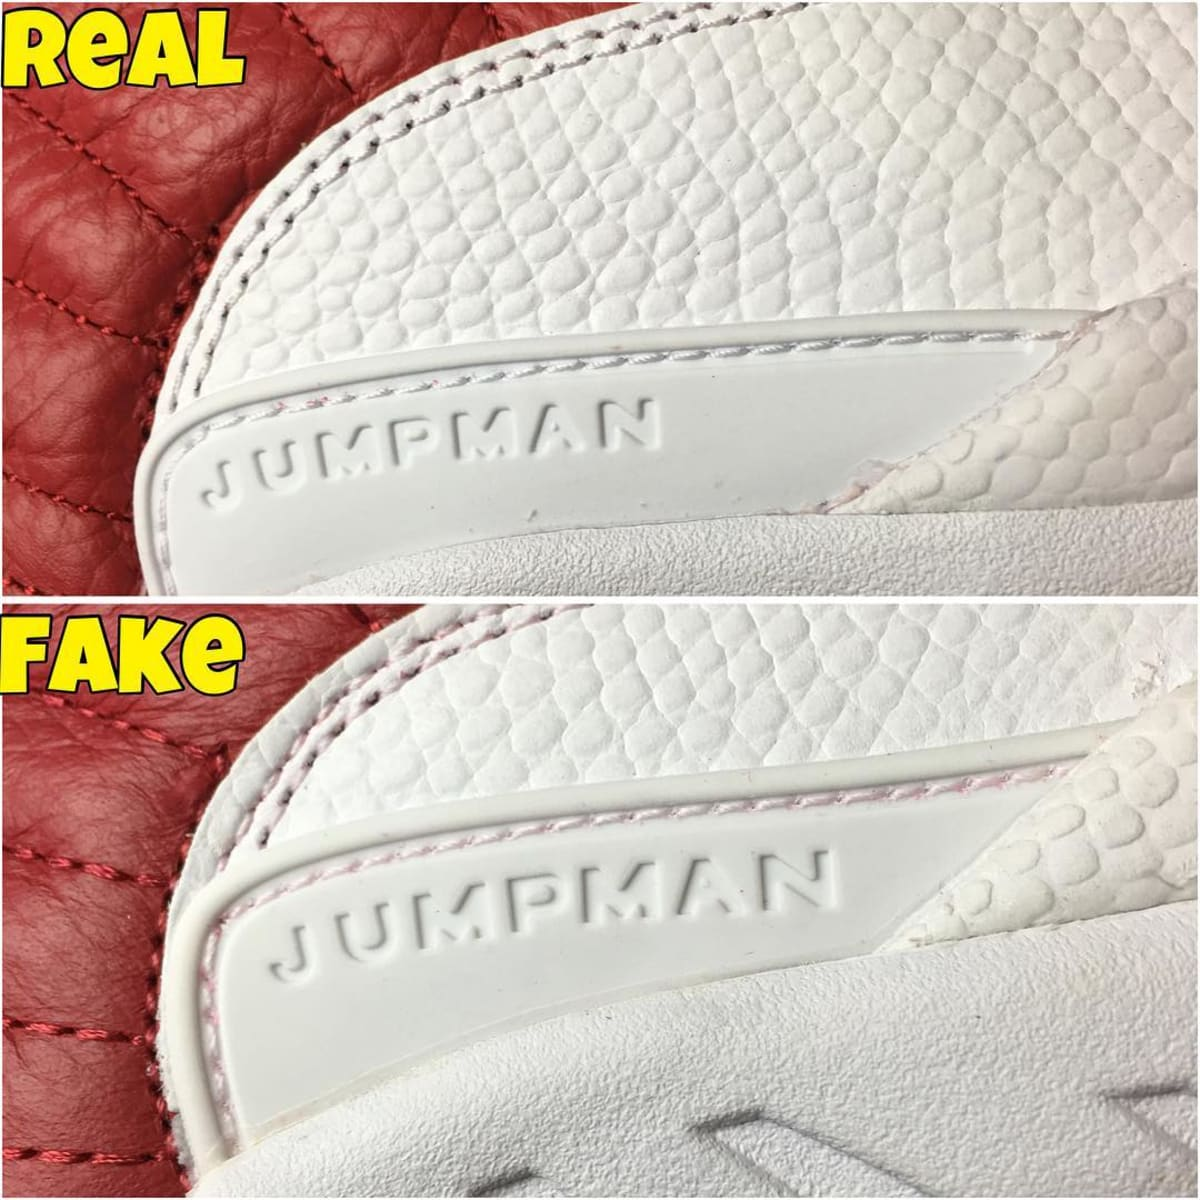 buy online 354d5 103e6 Air Jordan XII 12 Gym Red Alternate Real Fake Legit Check - Air Jordan XII  12 Gym Red Real Fake Legit Check   Sole Collector